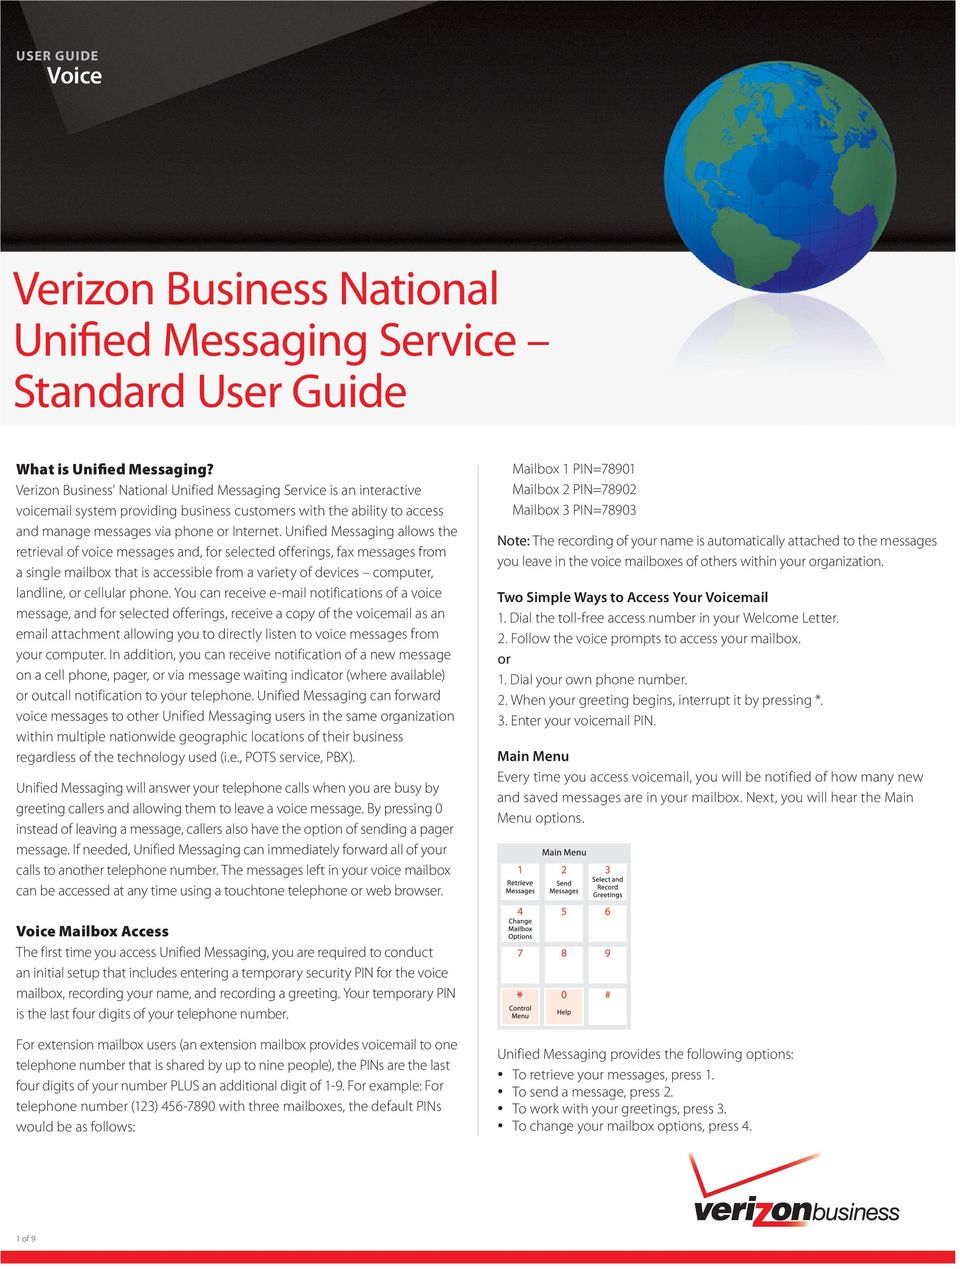 Unified Messaging allows the retrieval of voice messages and, for selected offerings, fax messages from a single mailbox that is accessible from a variety of devices computer, landline, or cellular